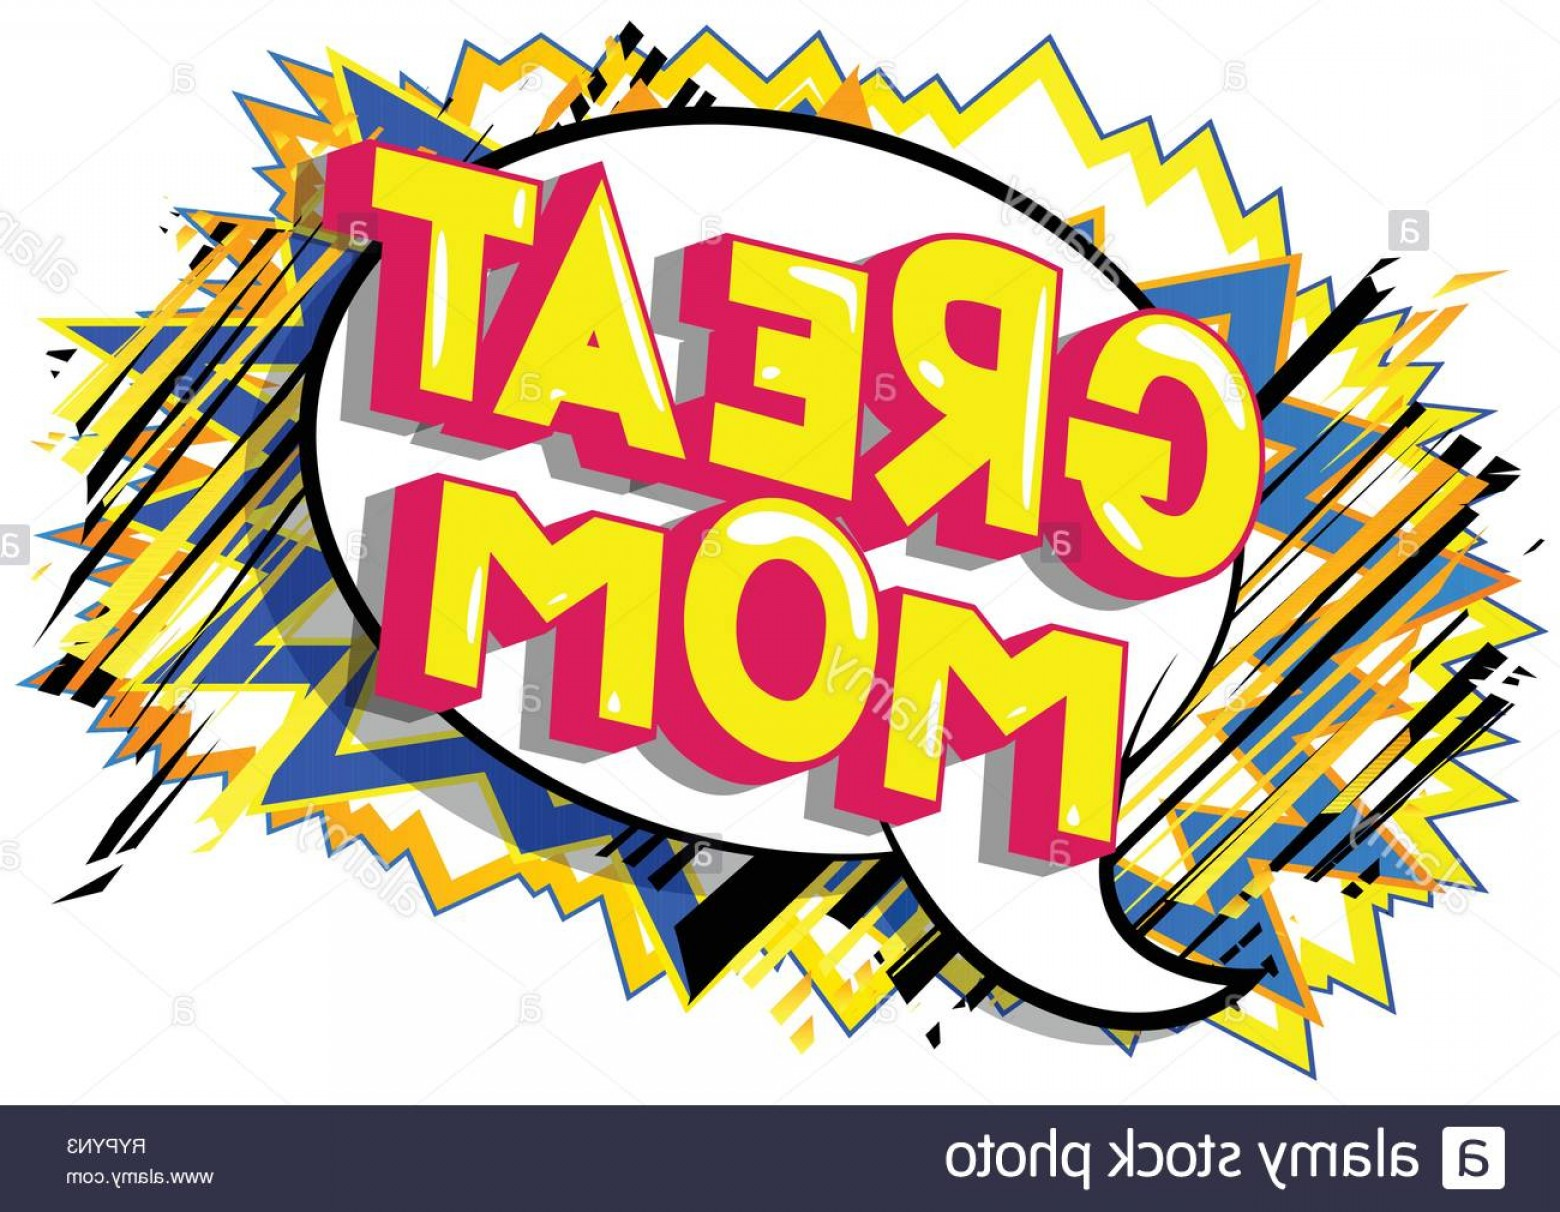 Comic Book Vector Png: Great Mom Vector Illustrated Comic Book Style Phrase On Abstract Background Image